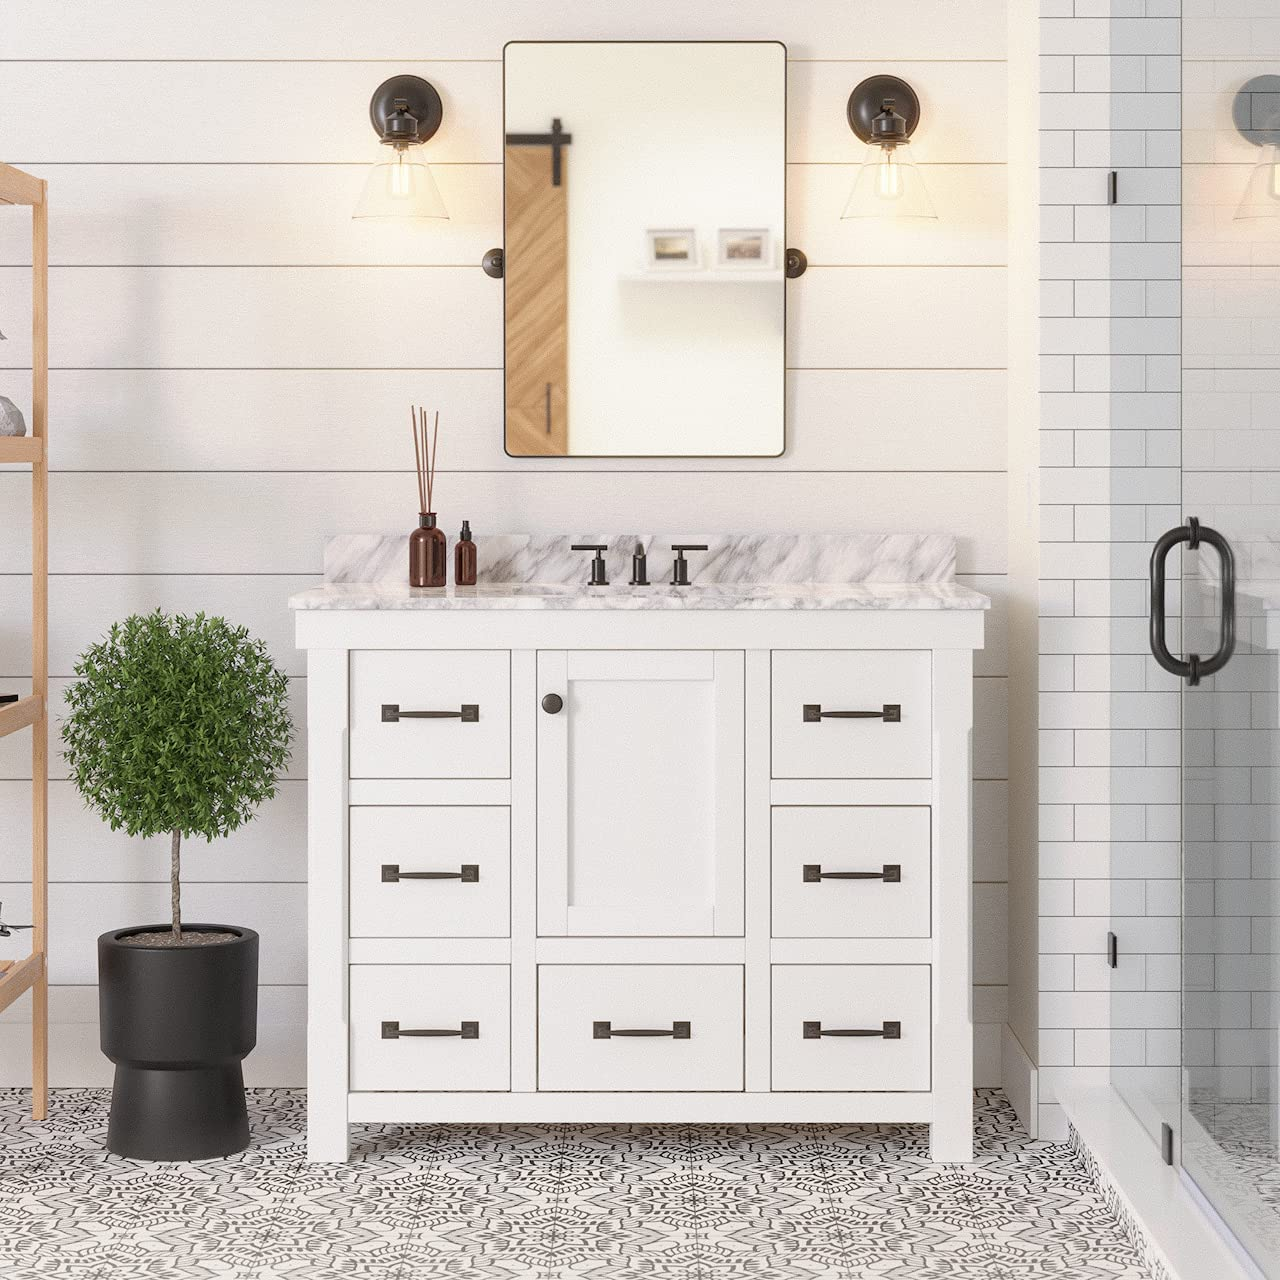 Tuscany 42 Inch Clearance Sale Limited Time Bathroom Vanity Carrara White Includes